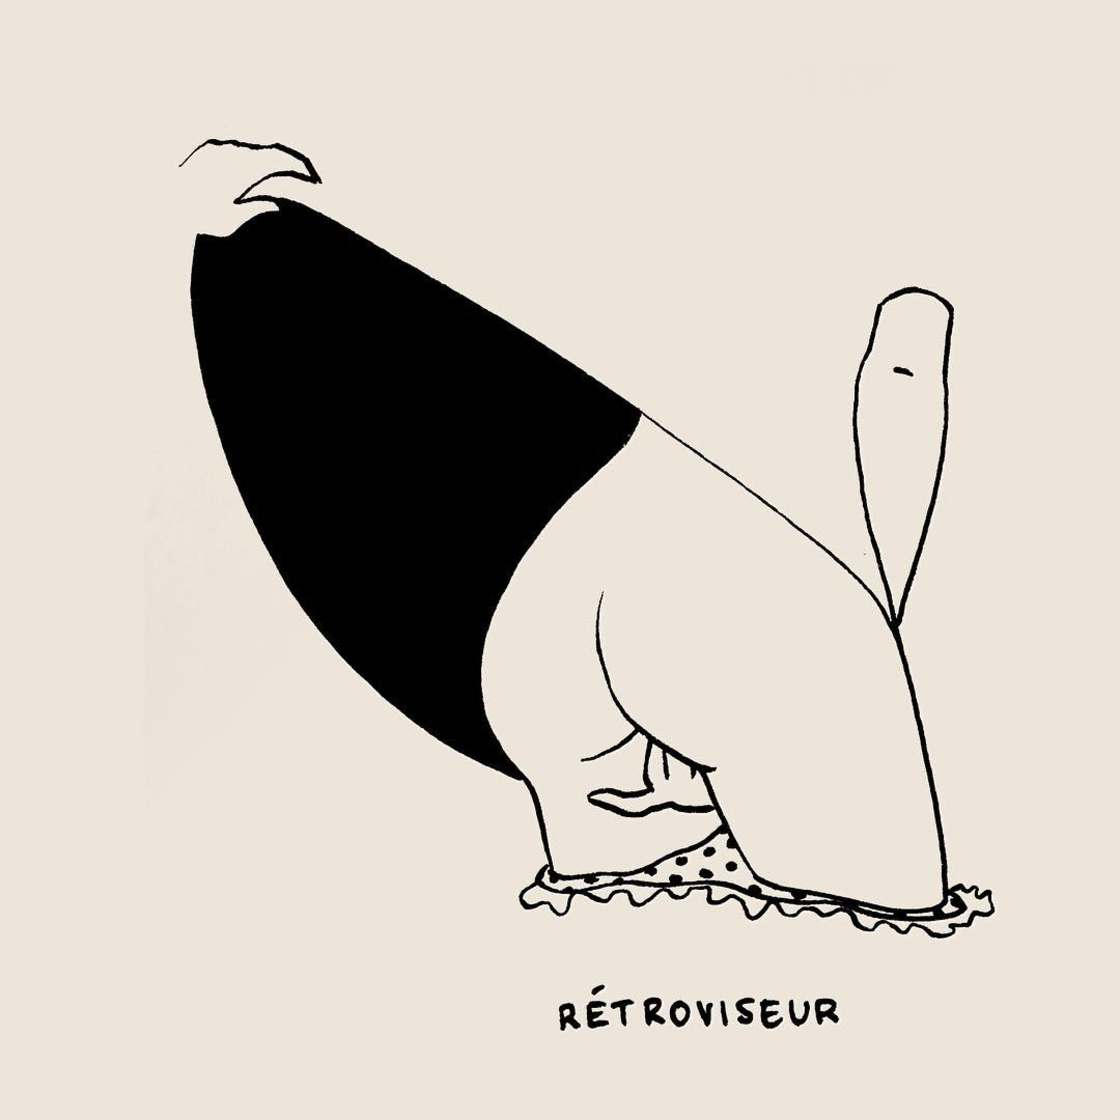 Petites Luxures - Some deliciously naughty illustrations